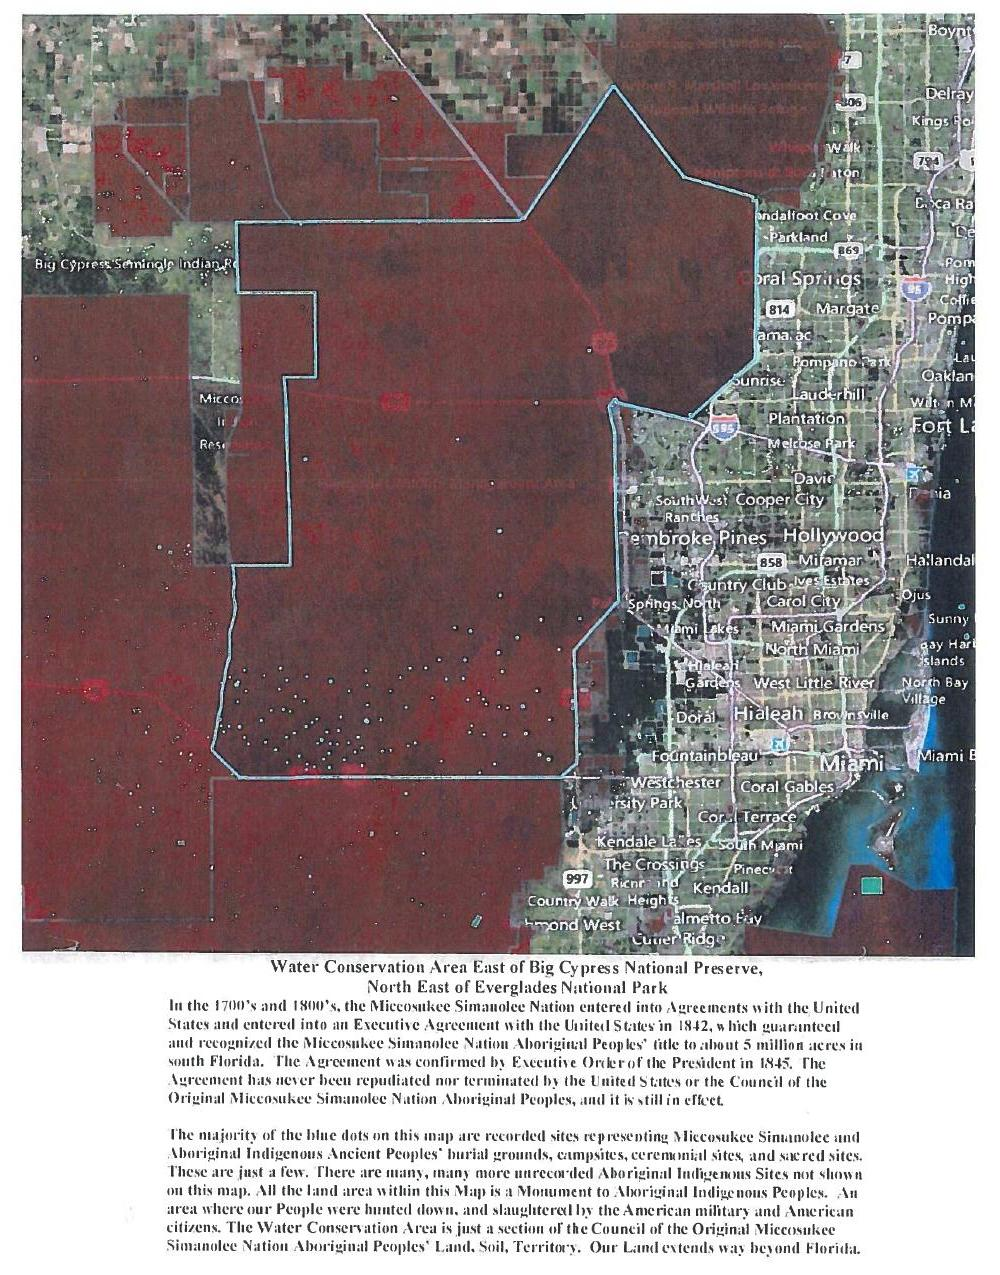 1000x1275 Water Conservataion Area East of Big Cypress National Preserve, in Council of the Original Miccosukee Simanolee Nation, by John S. Quarterman, for SpectraBusters.org, 21 November 2013